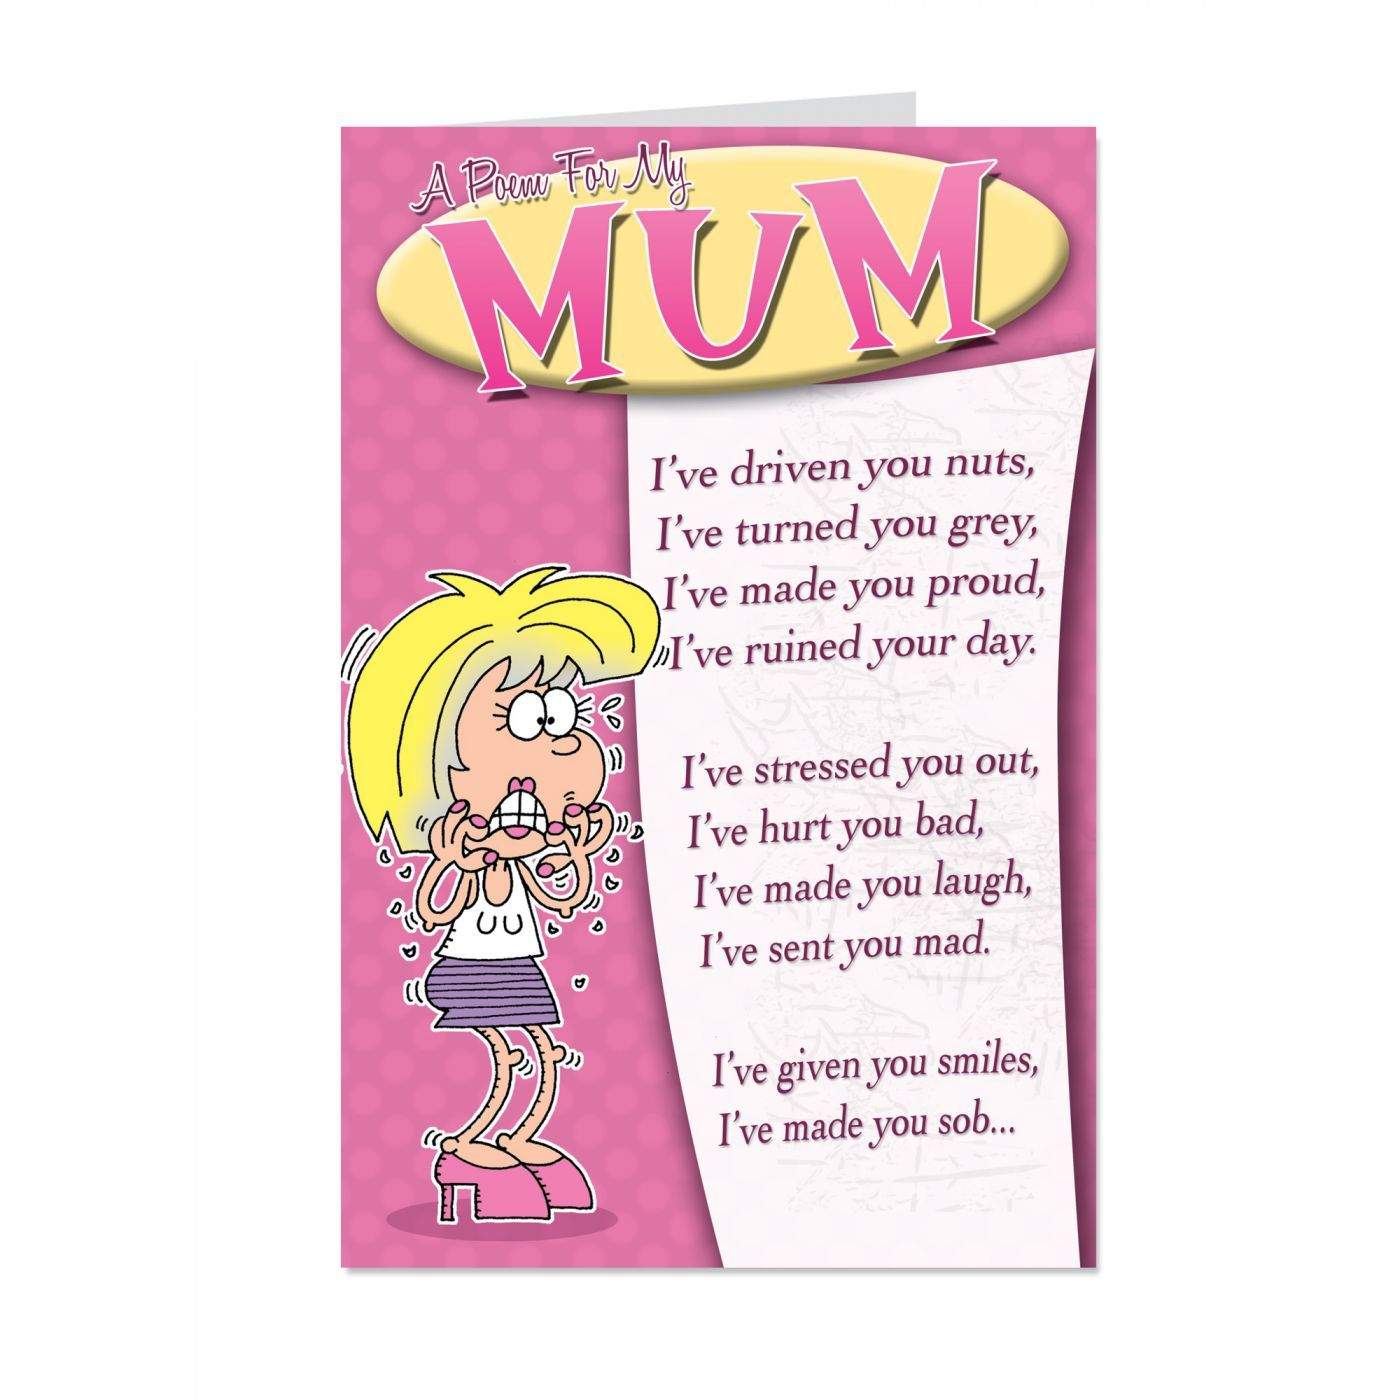 Poem For Mum Nuts Mothers Day Card